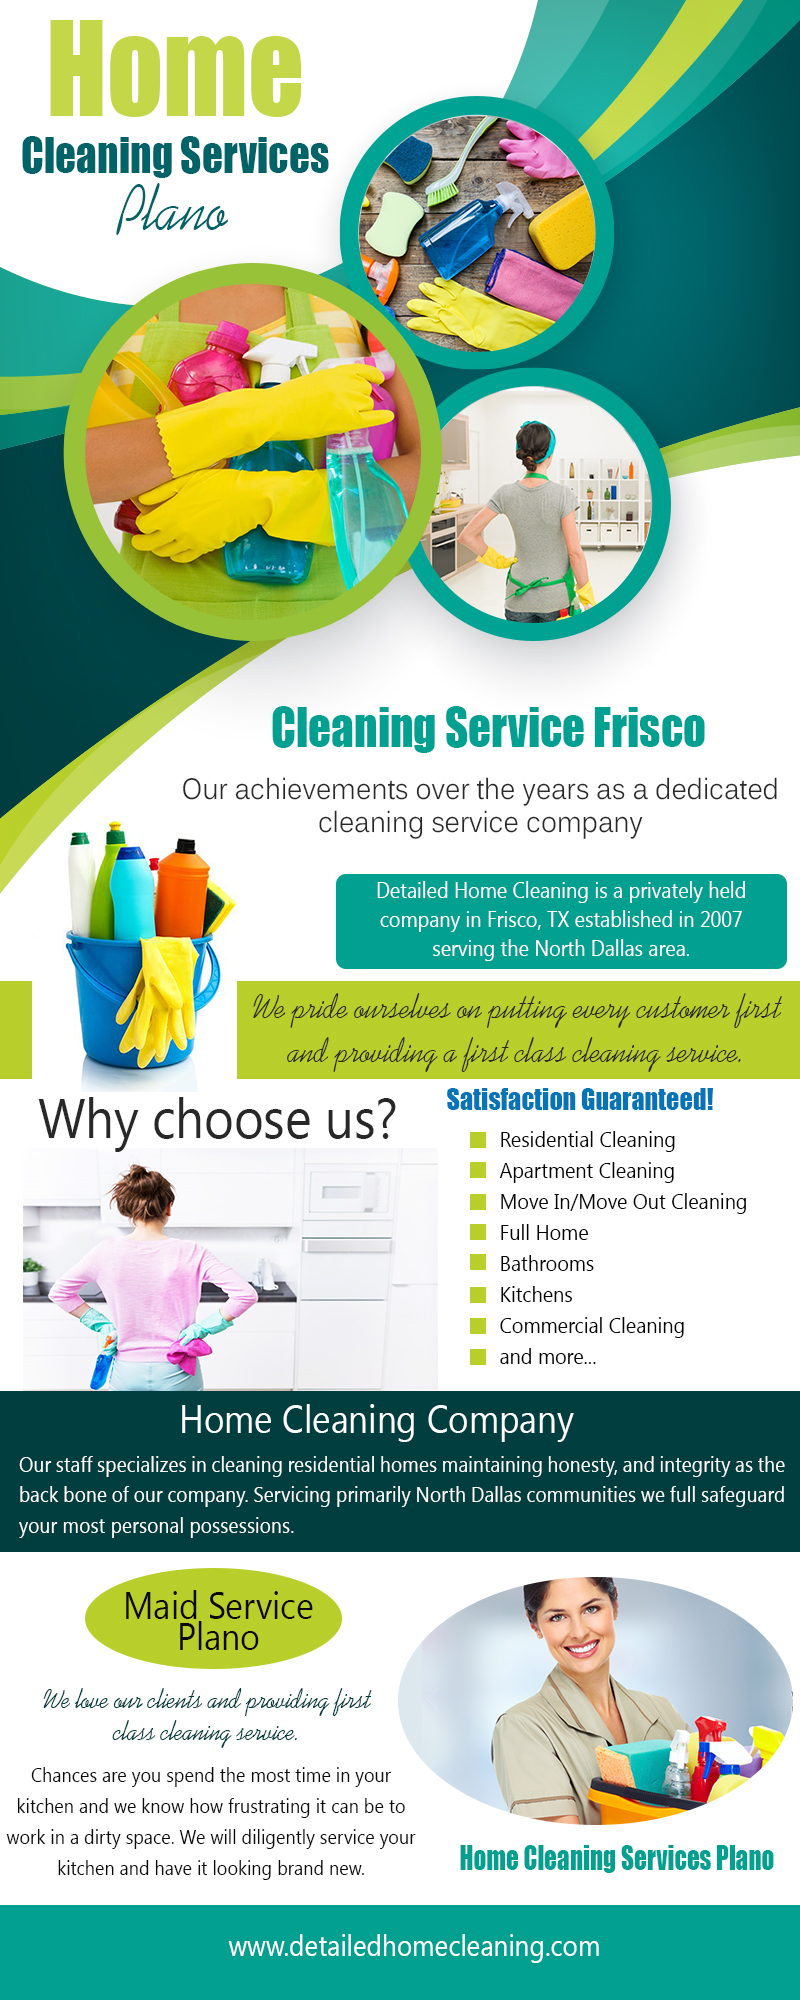 Home Cleaning Services Plano